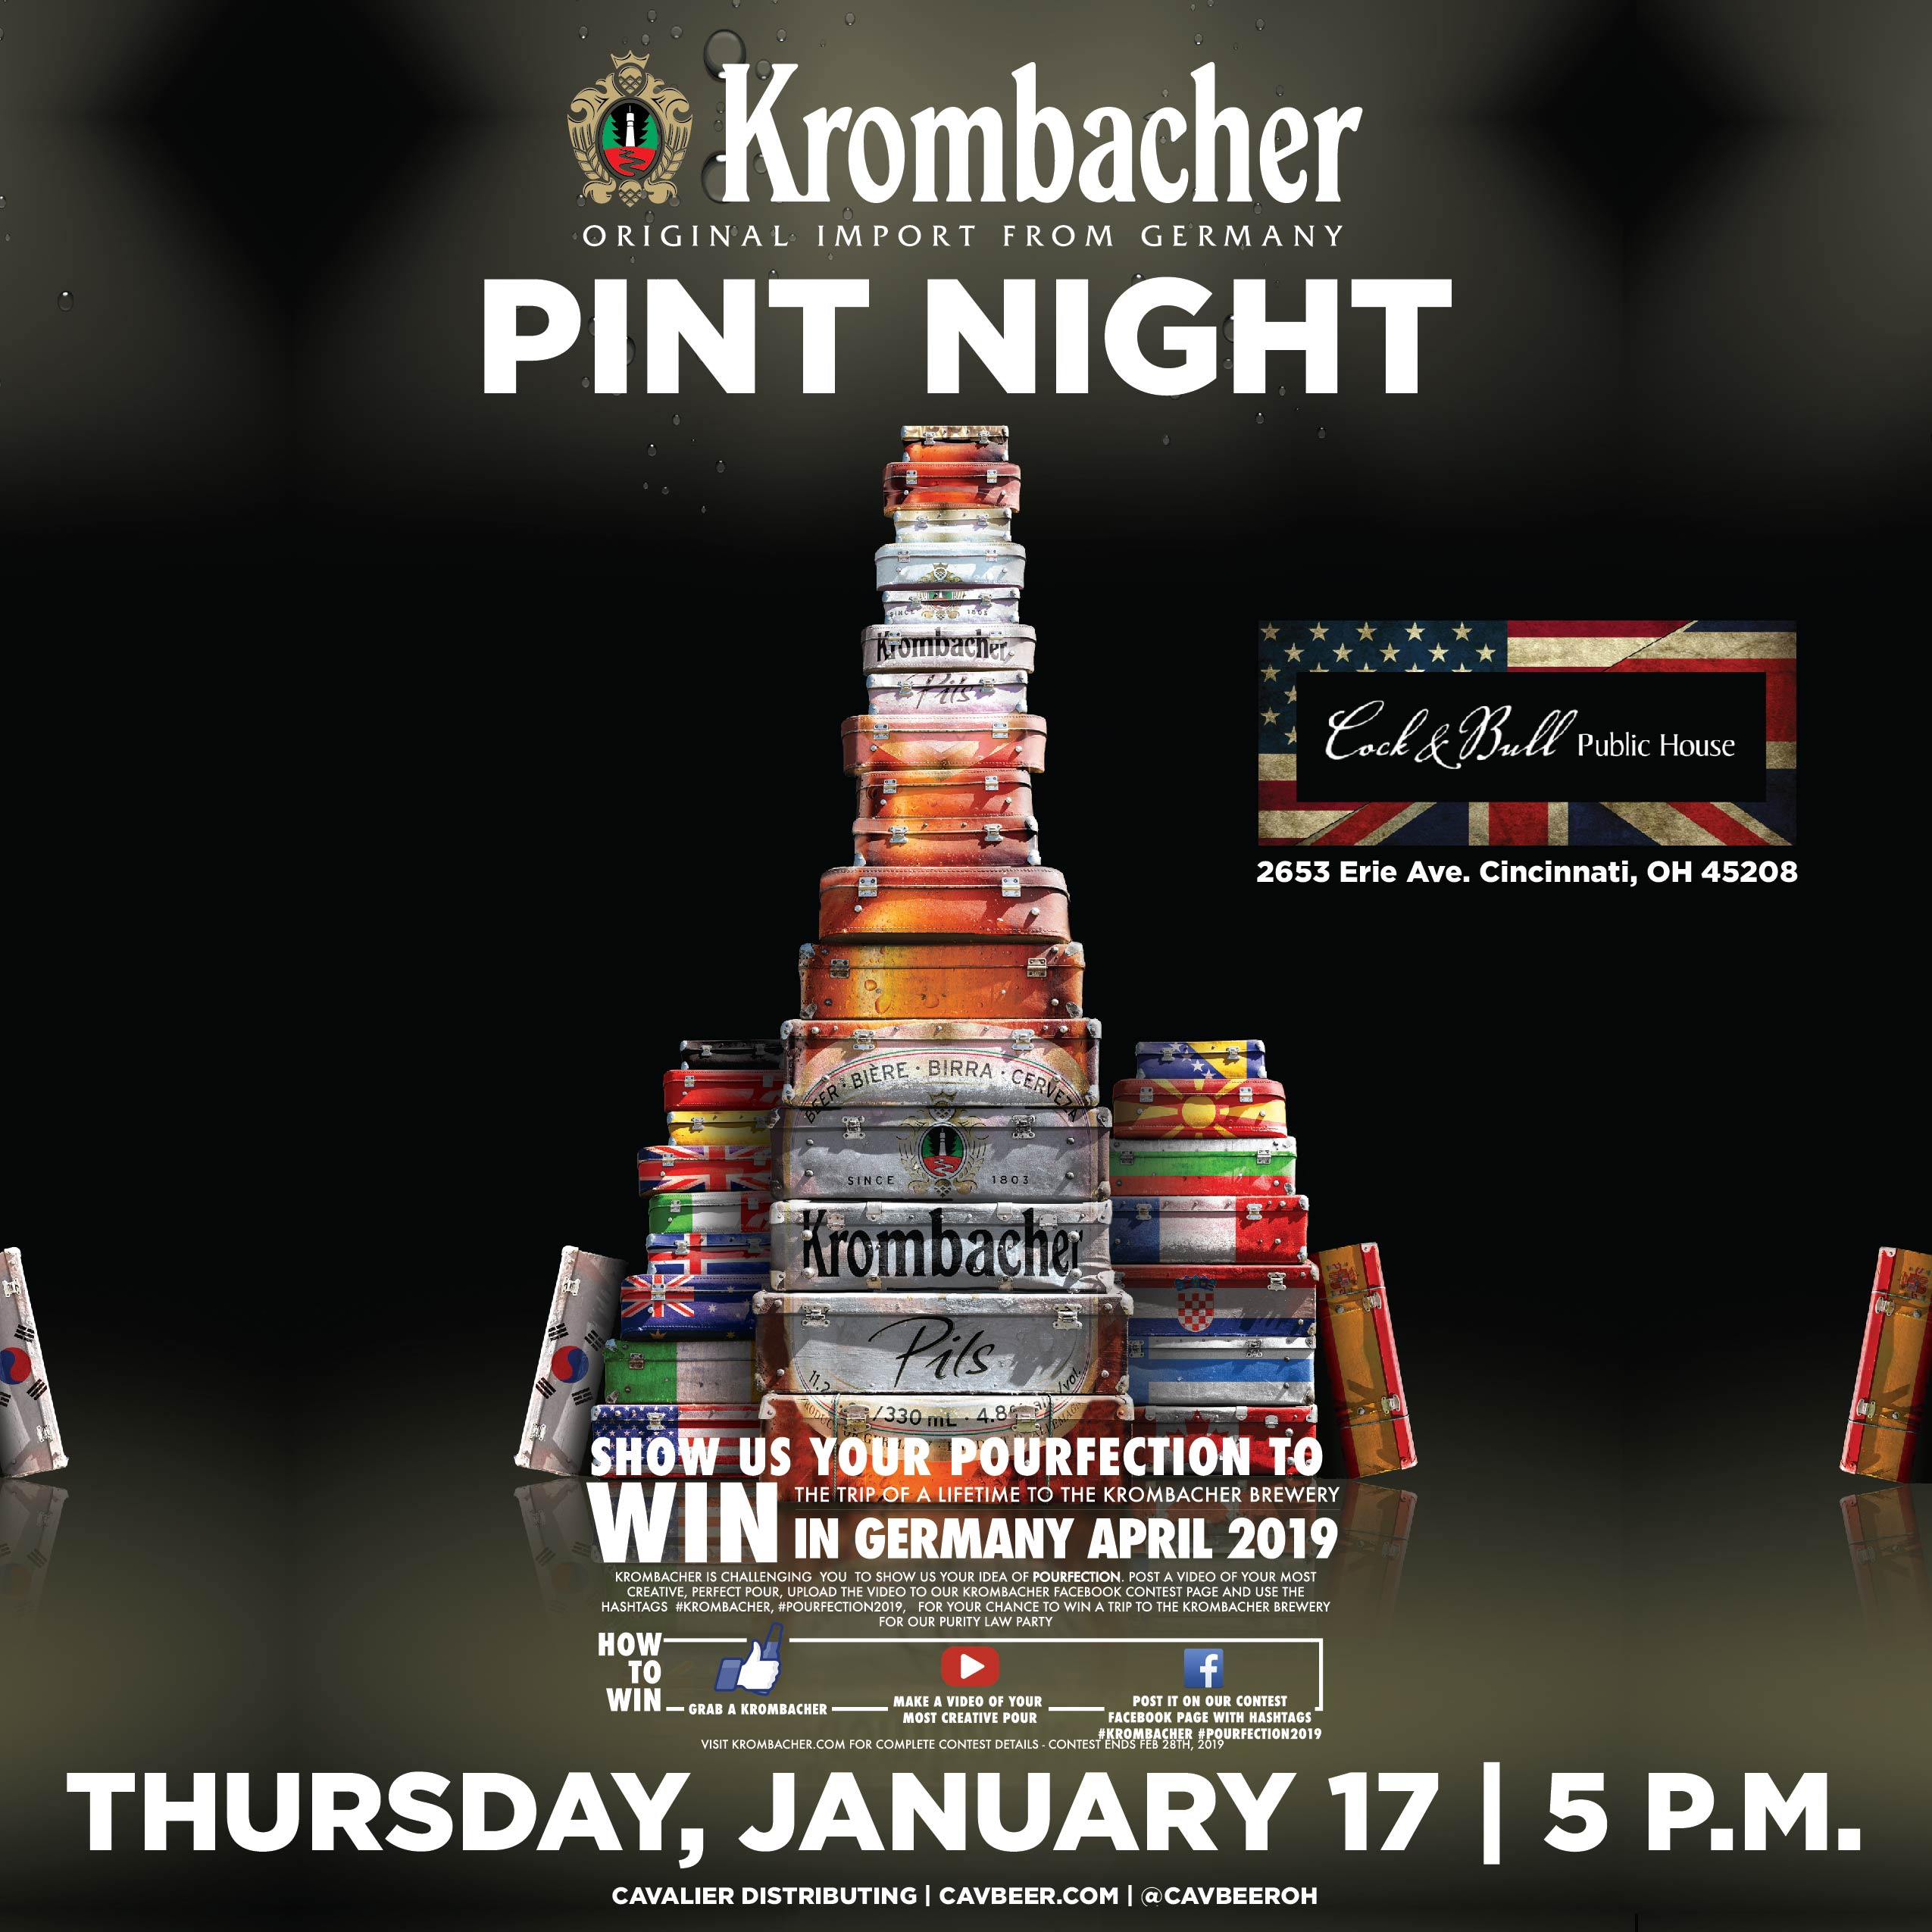 Krombacher Pint Night @ Cock & Bull Public House